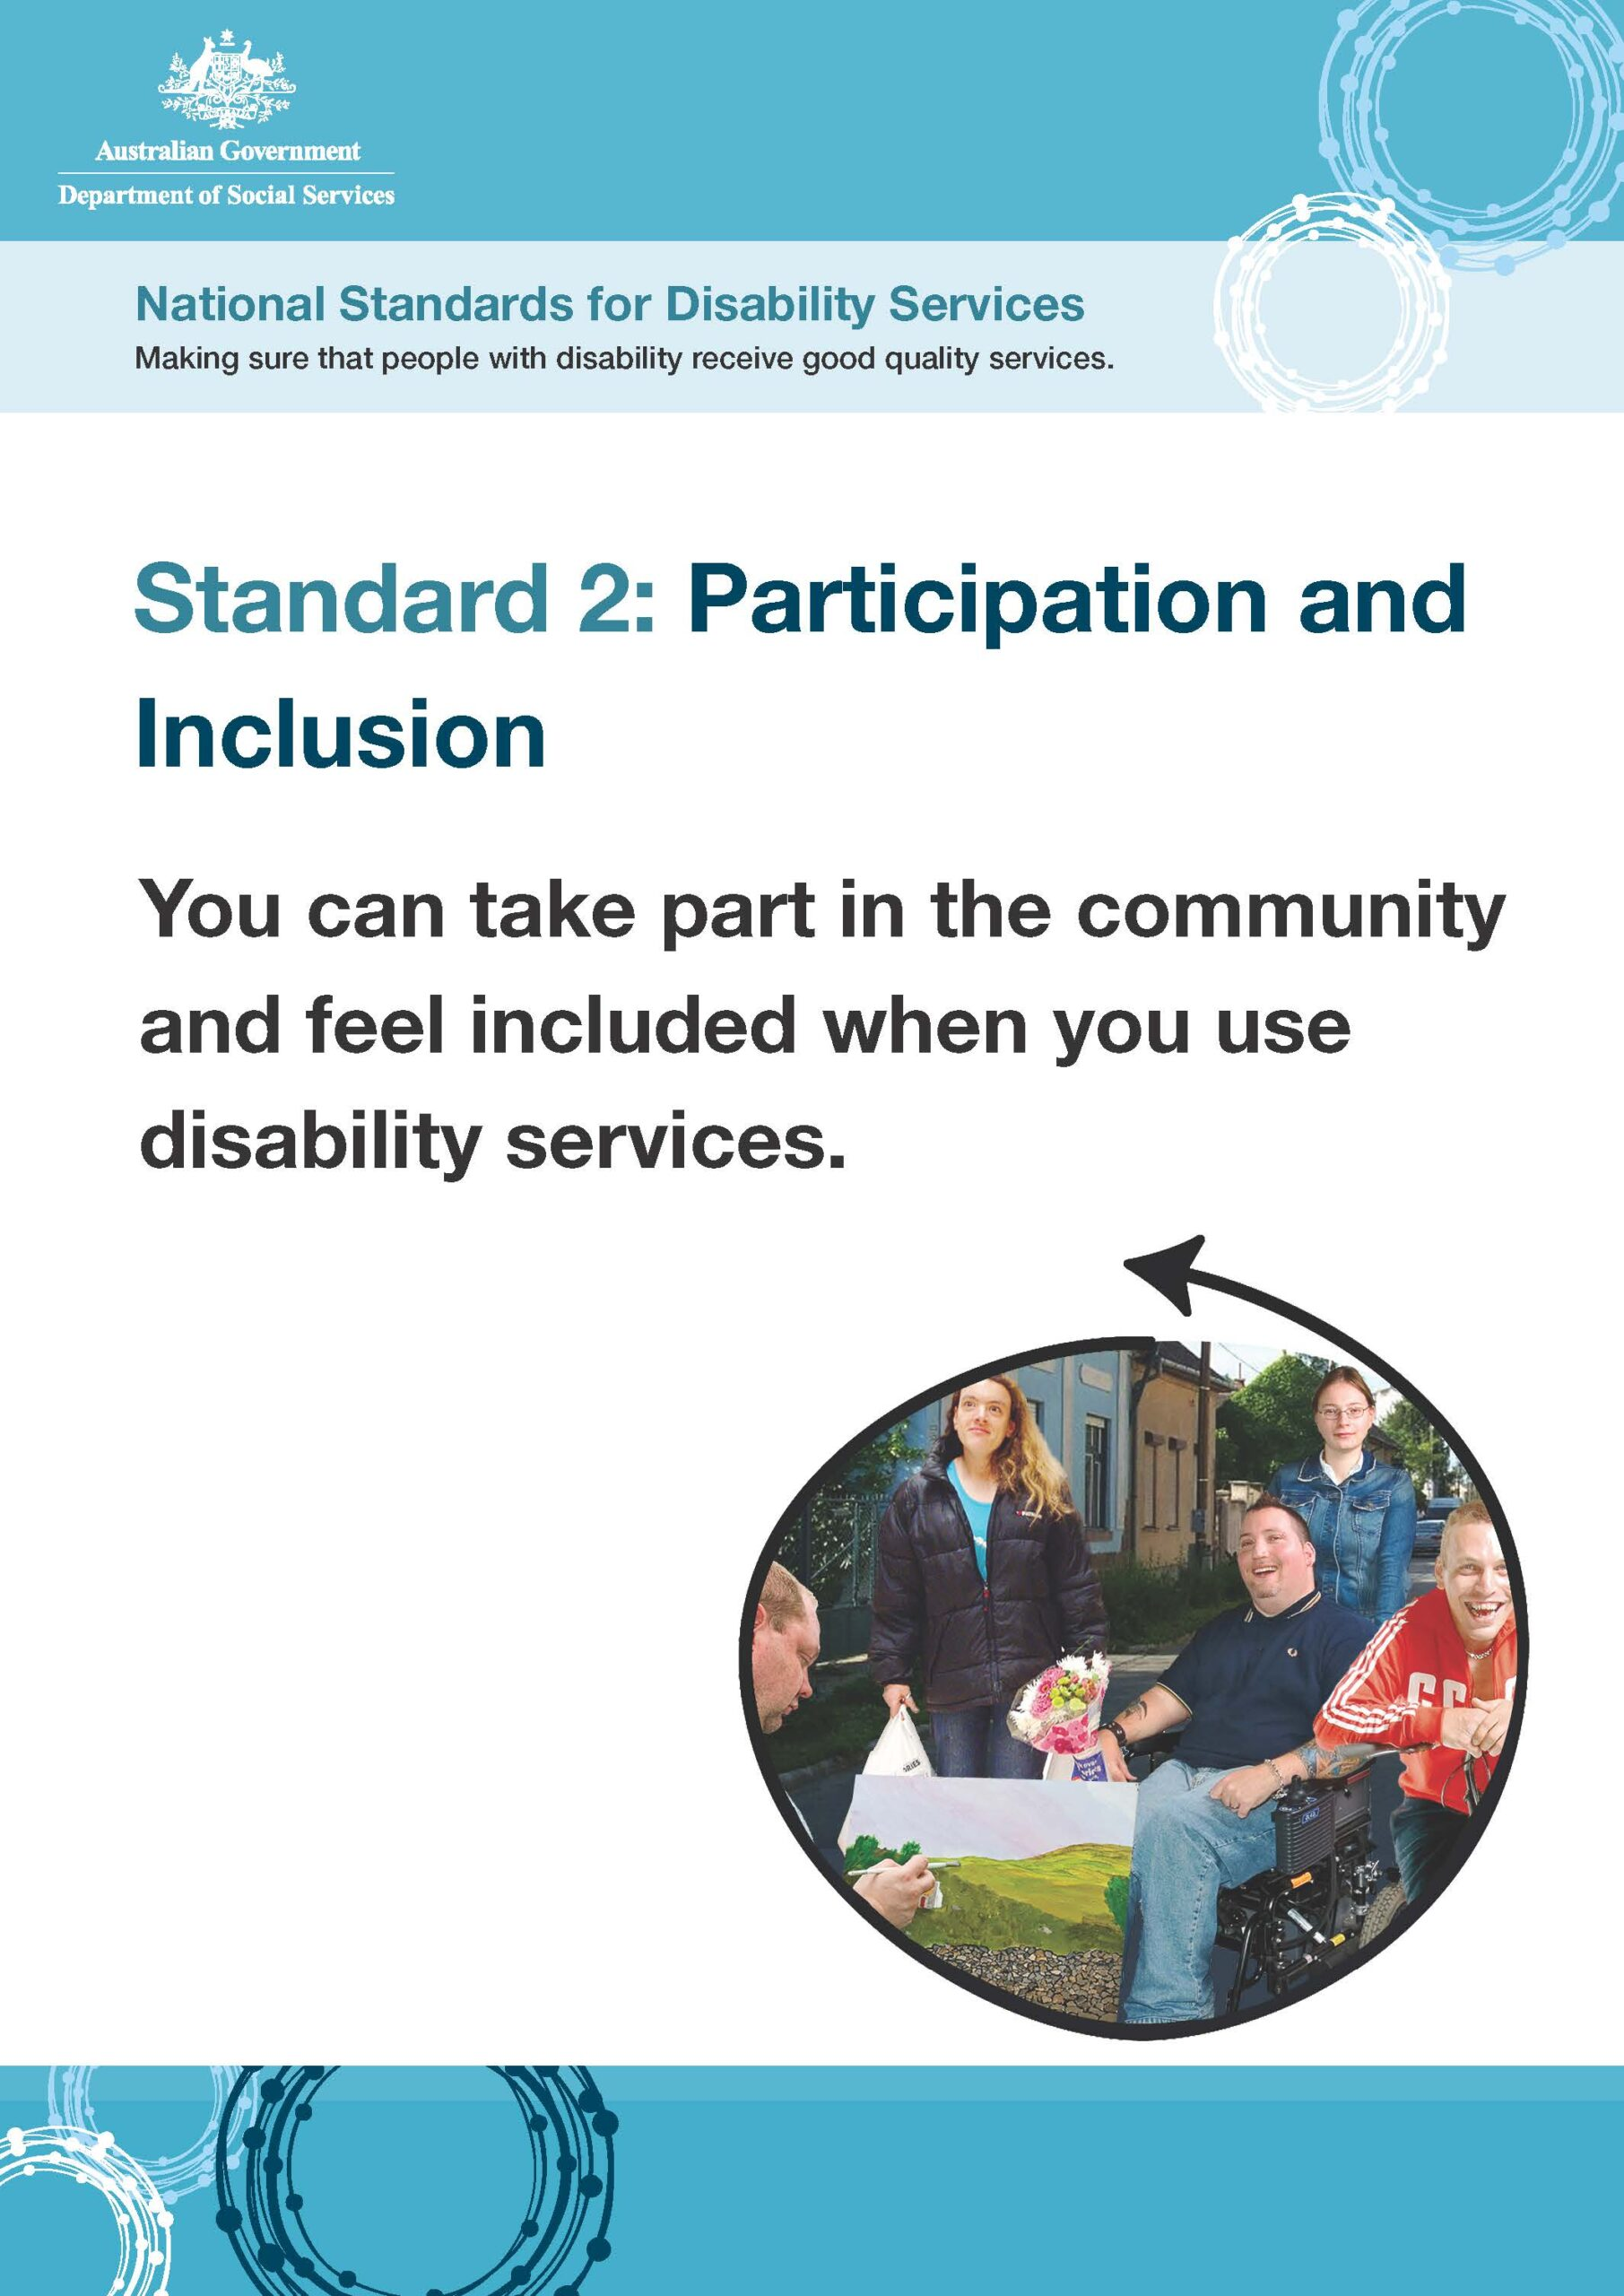 We support experiences of social belonging and authentic community relationships.